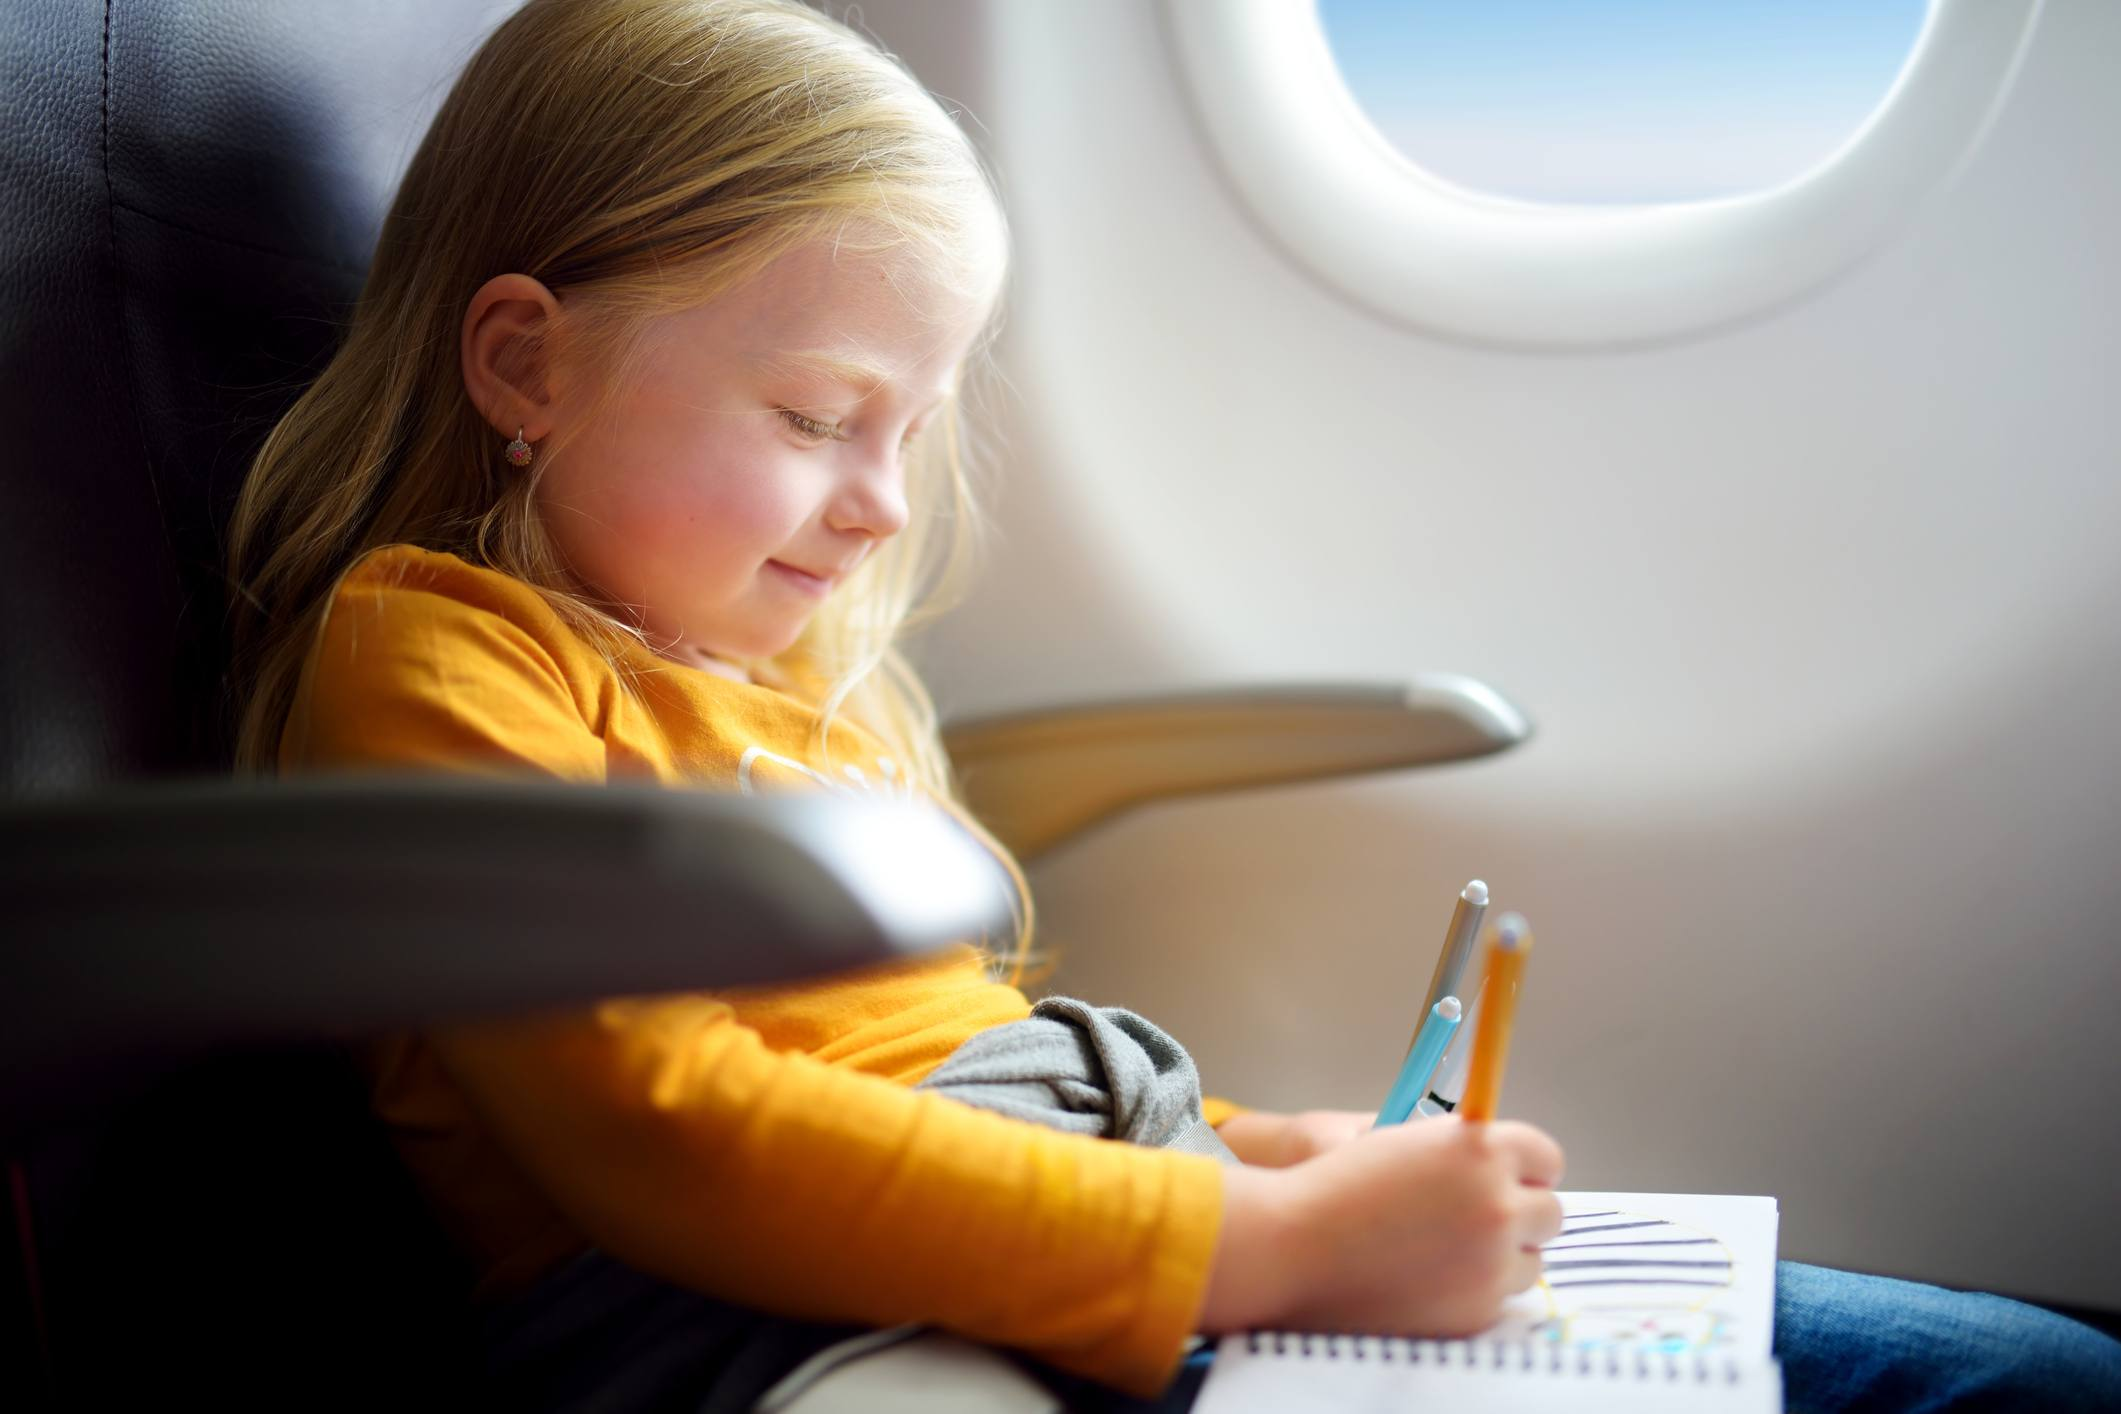 Adorable little girl traveling by an airplane. Child sitting by aircraft window and drawing or coloring a picture with felt-tip pens.